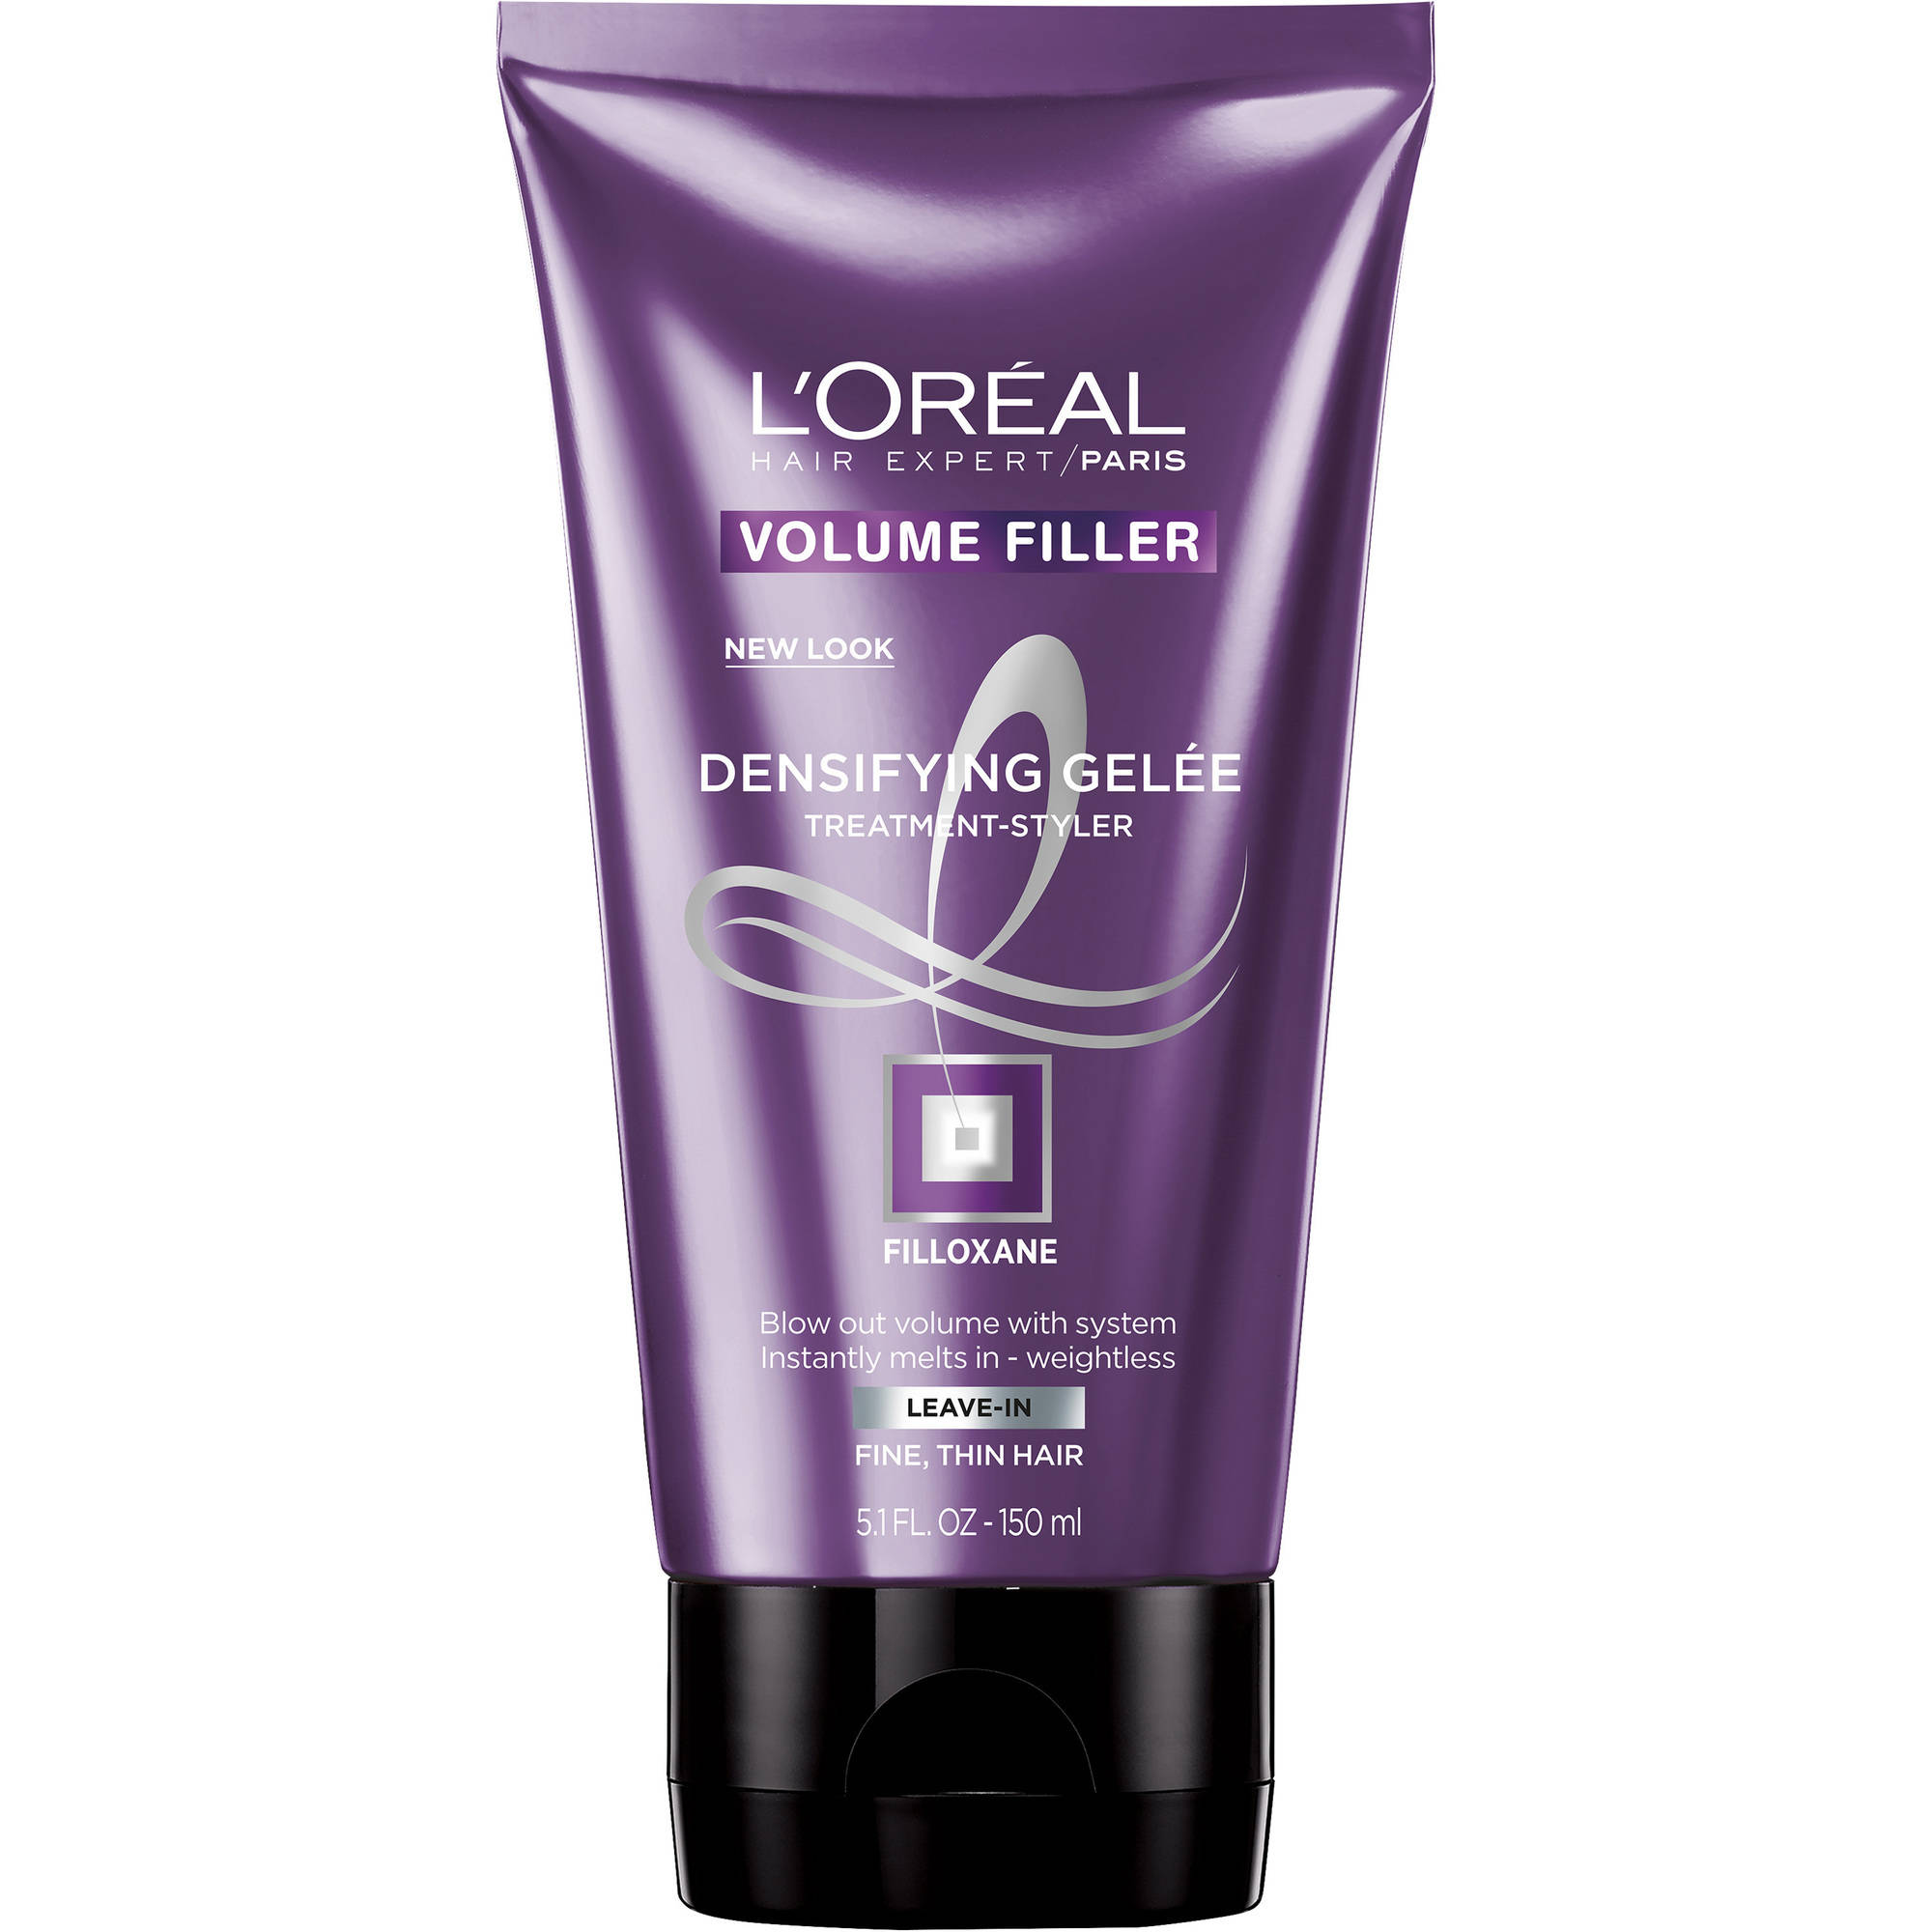 L'Oreal Paris Advanced Haircare Volume Filler Densifying Gelee, 5.1 fl oz